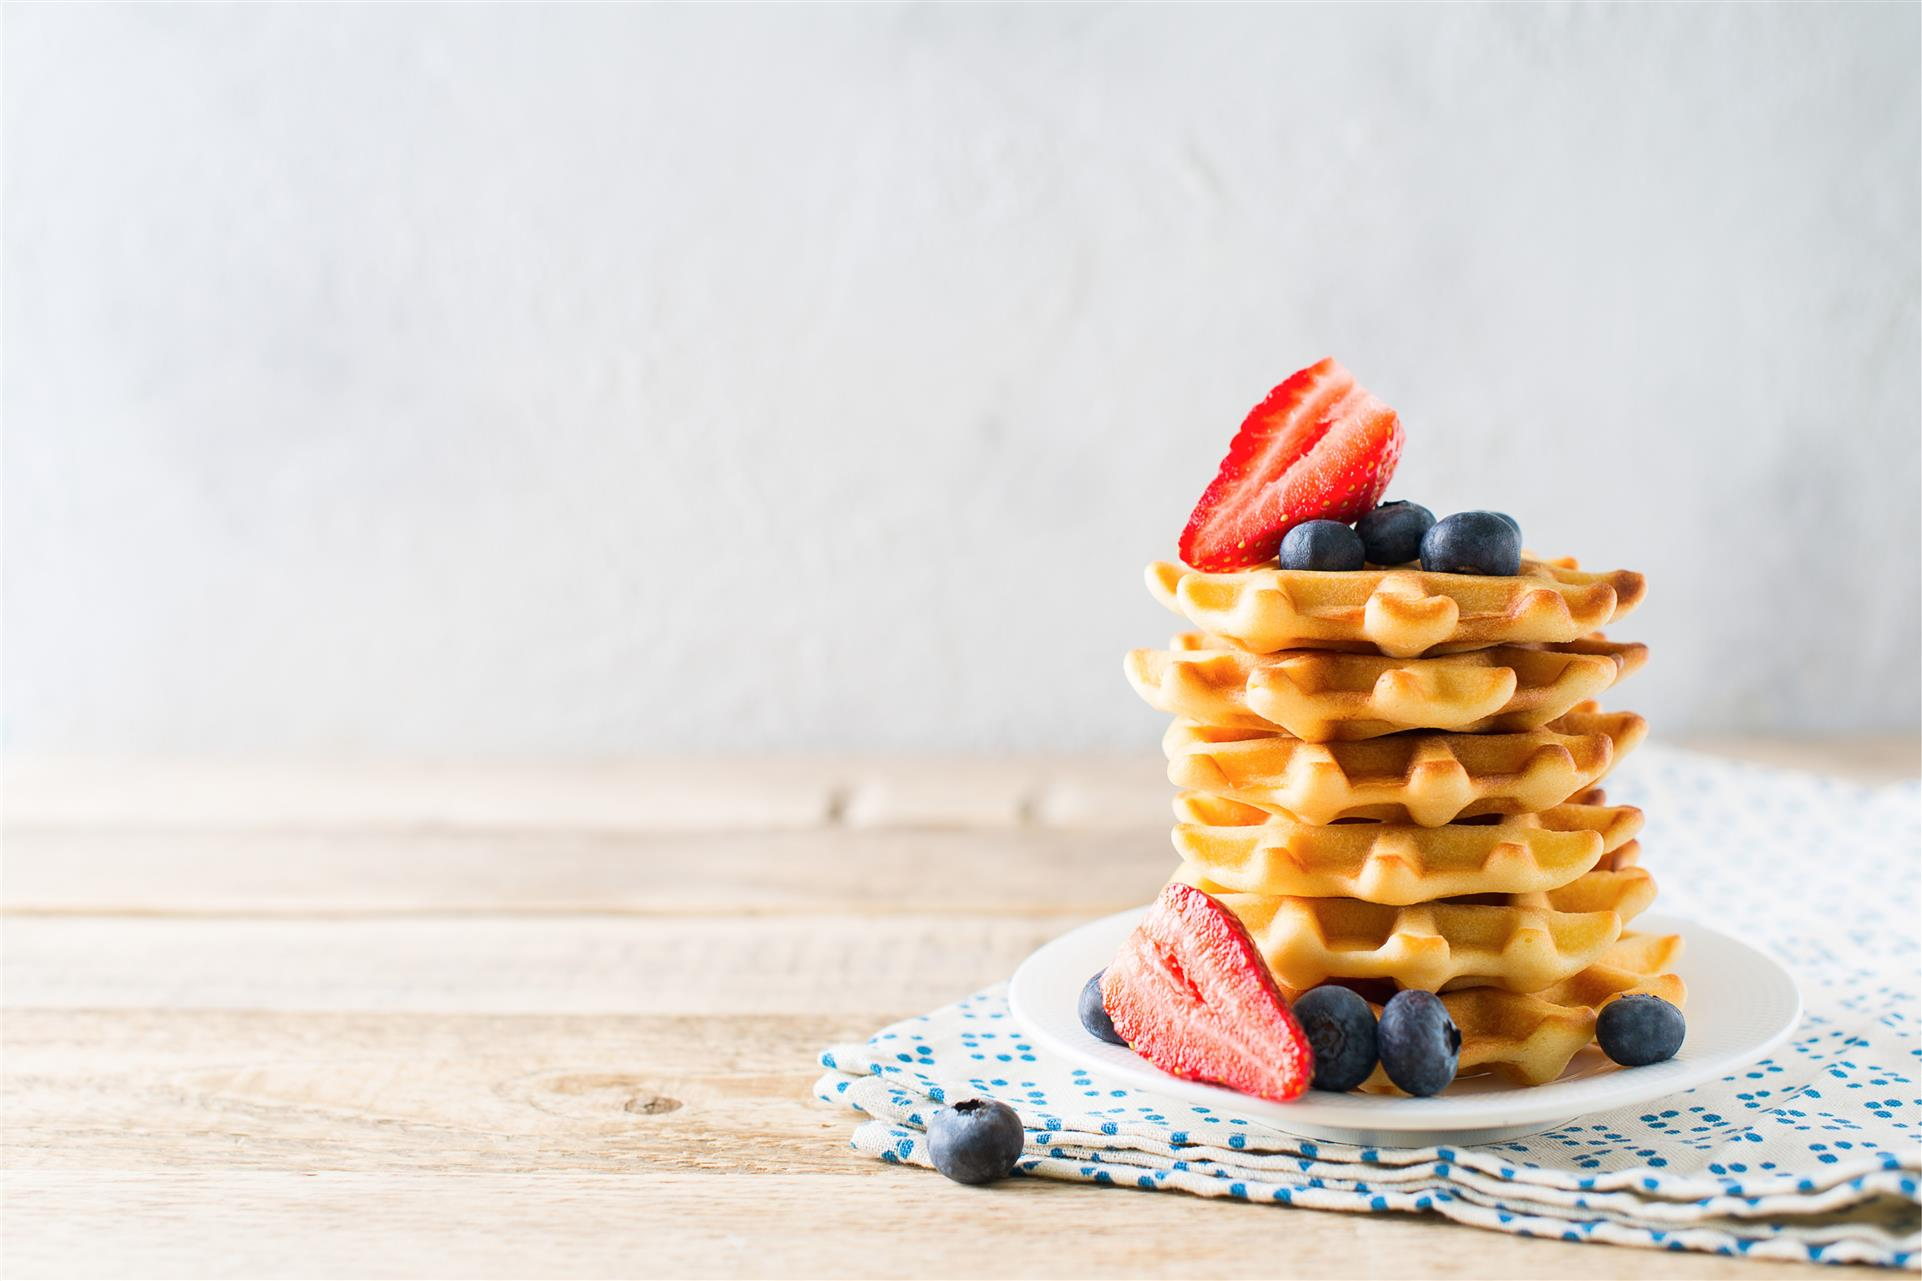 stack of waffles topped with syrup, blueberries and strawberries